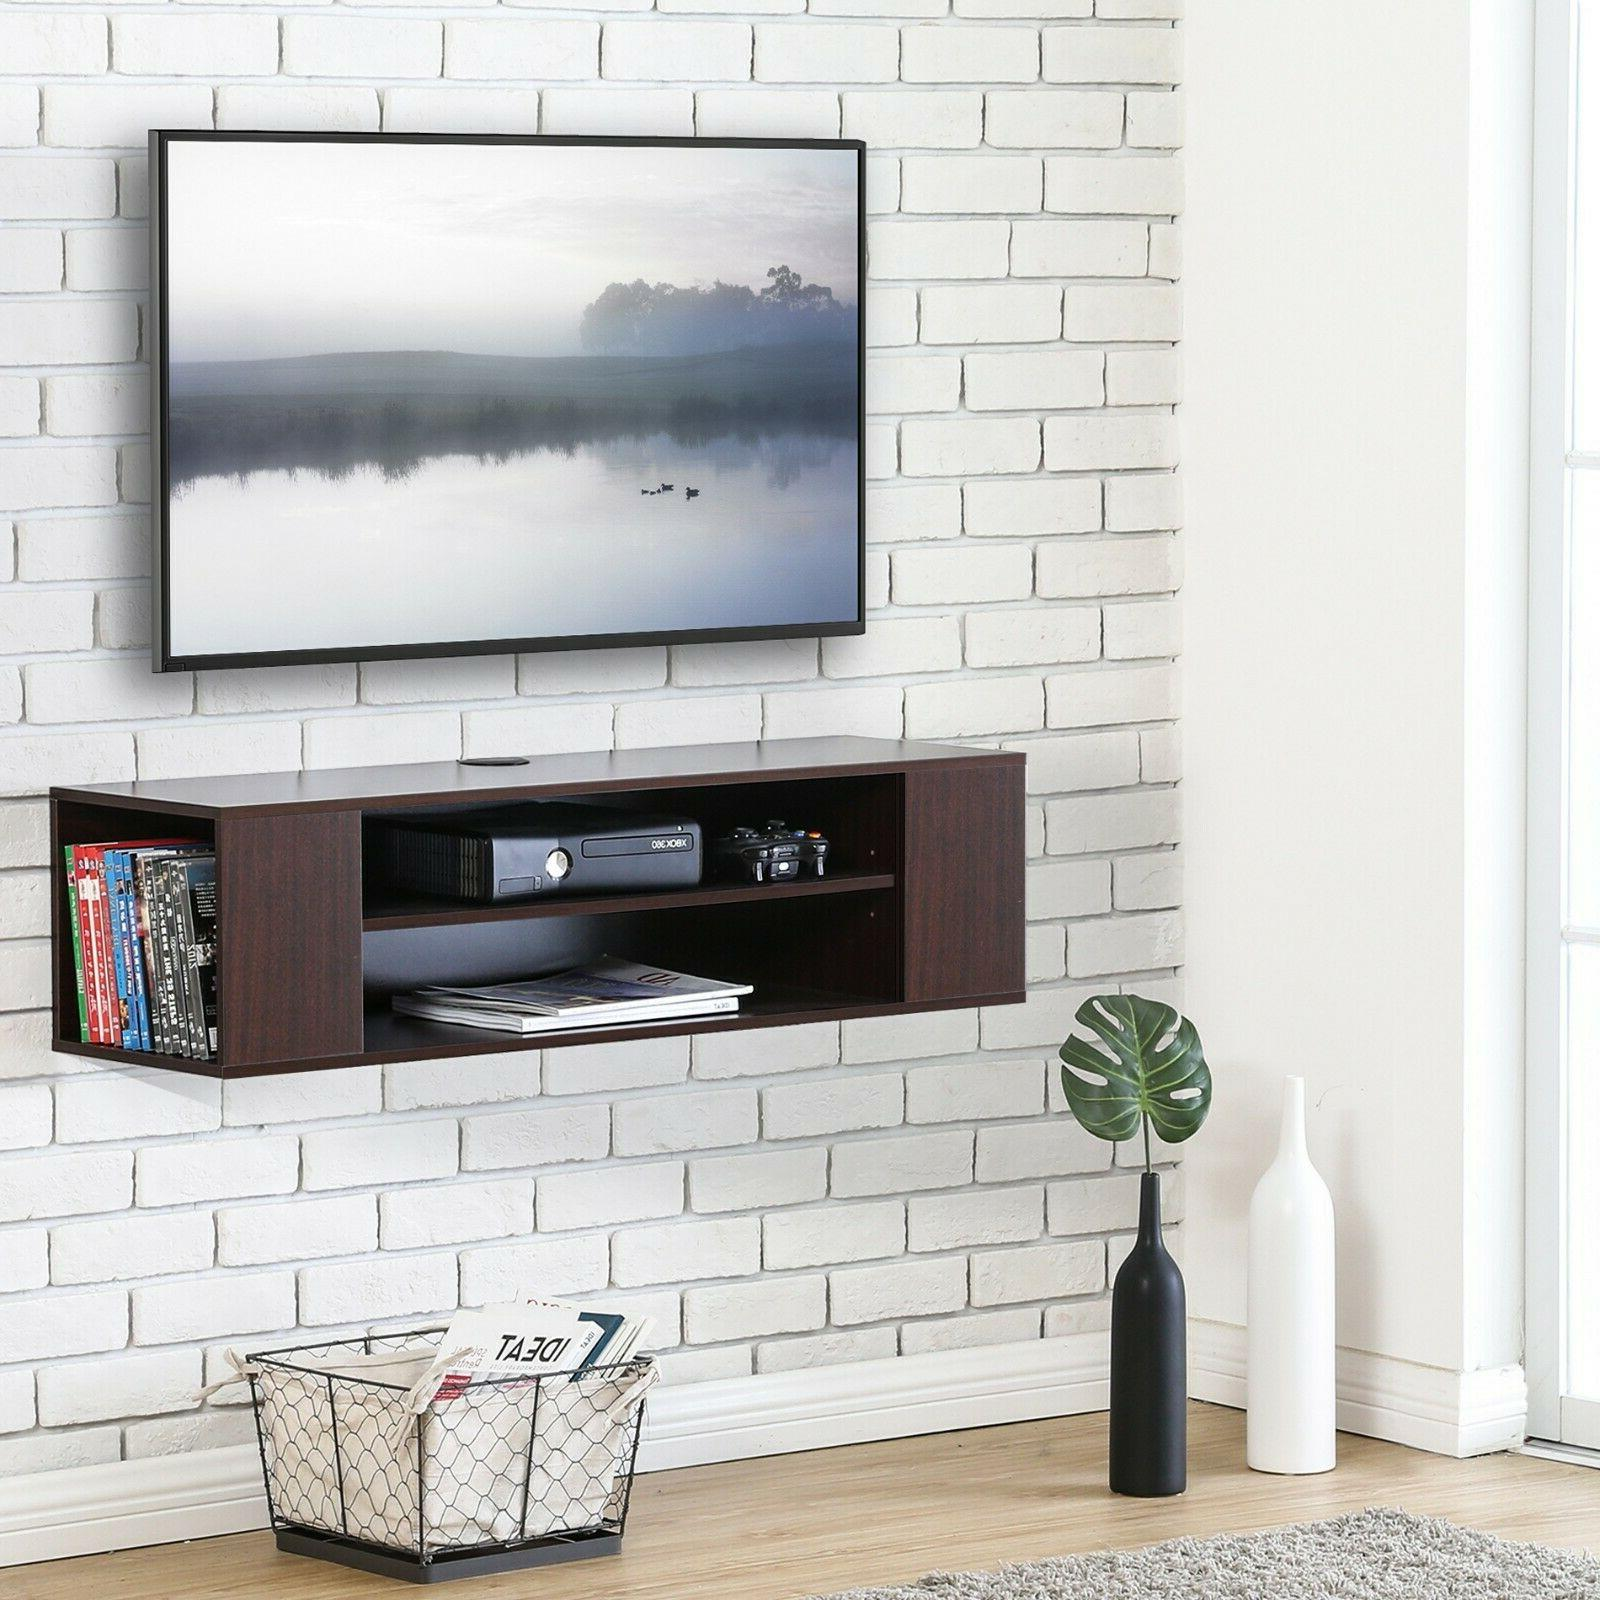 Wall Mount TV Component